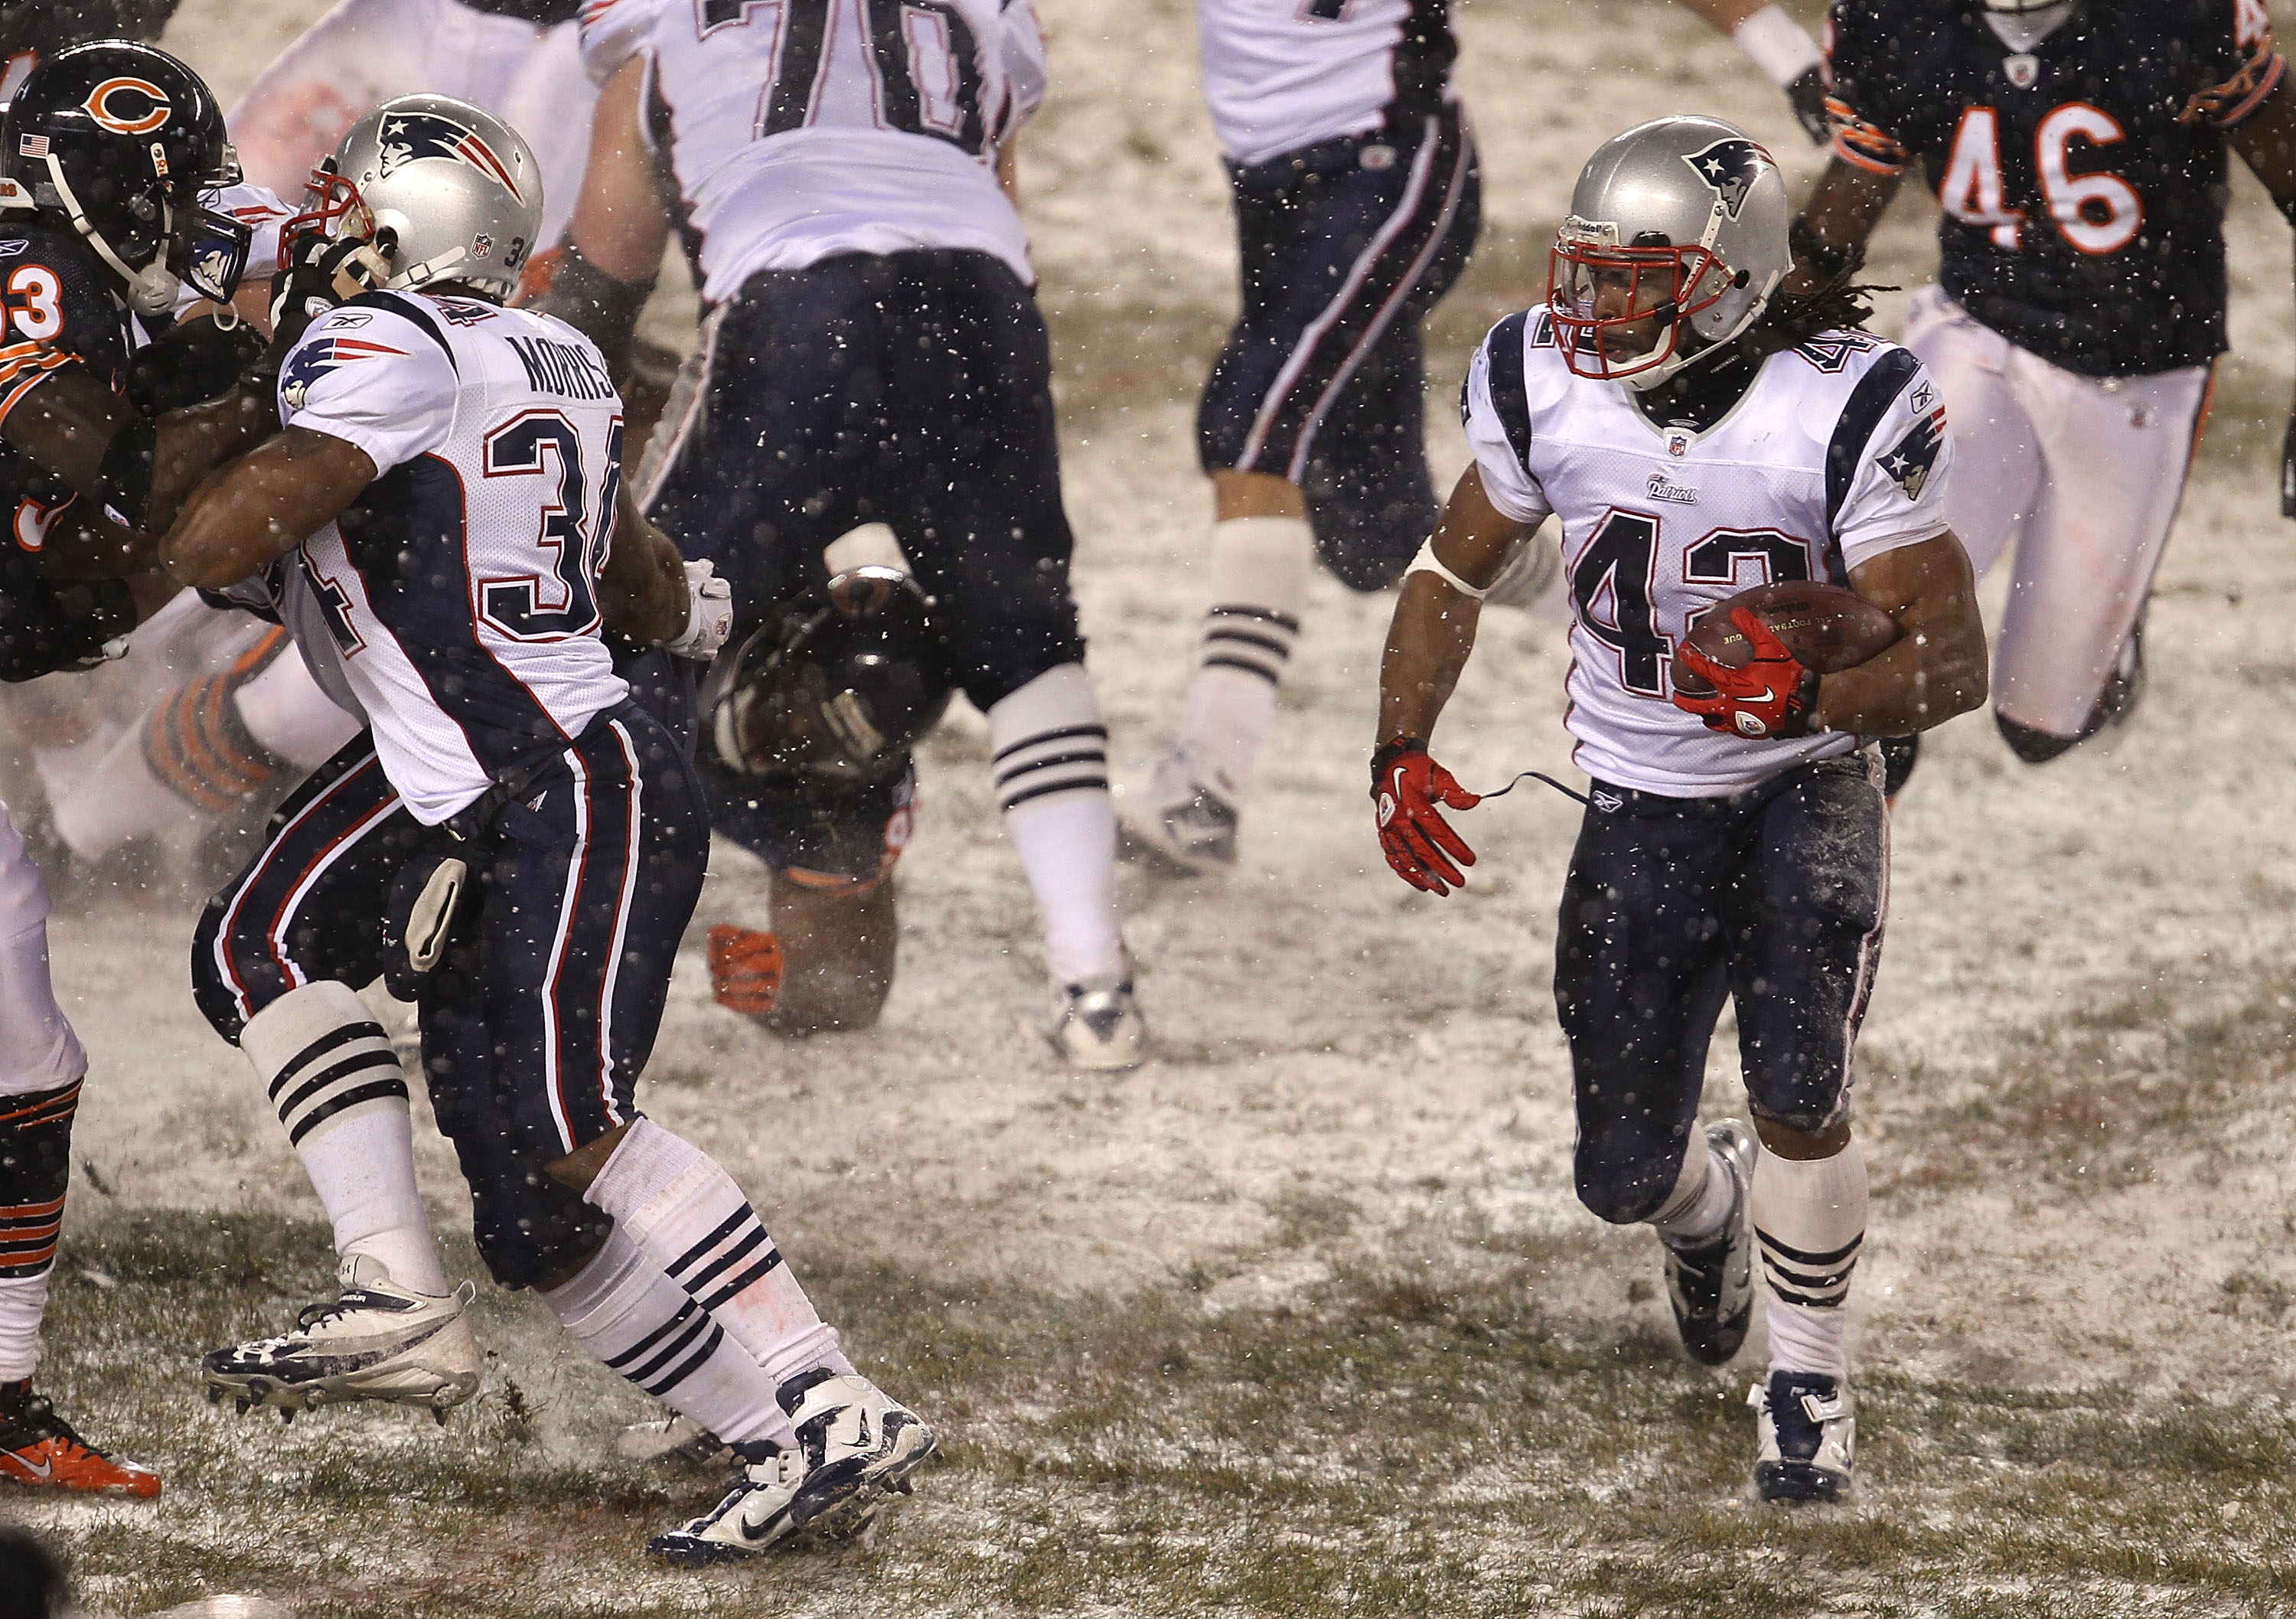 CHICAGO, IL - DECEMBER 12: Ben-Jarvus Green-Ellis #42 of the New England Patriots looks for running room against the Chicago Bears at Soldier Field on December 12, 2010 in Chicago, Illinois. The Patriots defeated the Bears 36-7. (Photo by Jonathan Daniel/